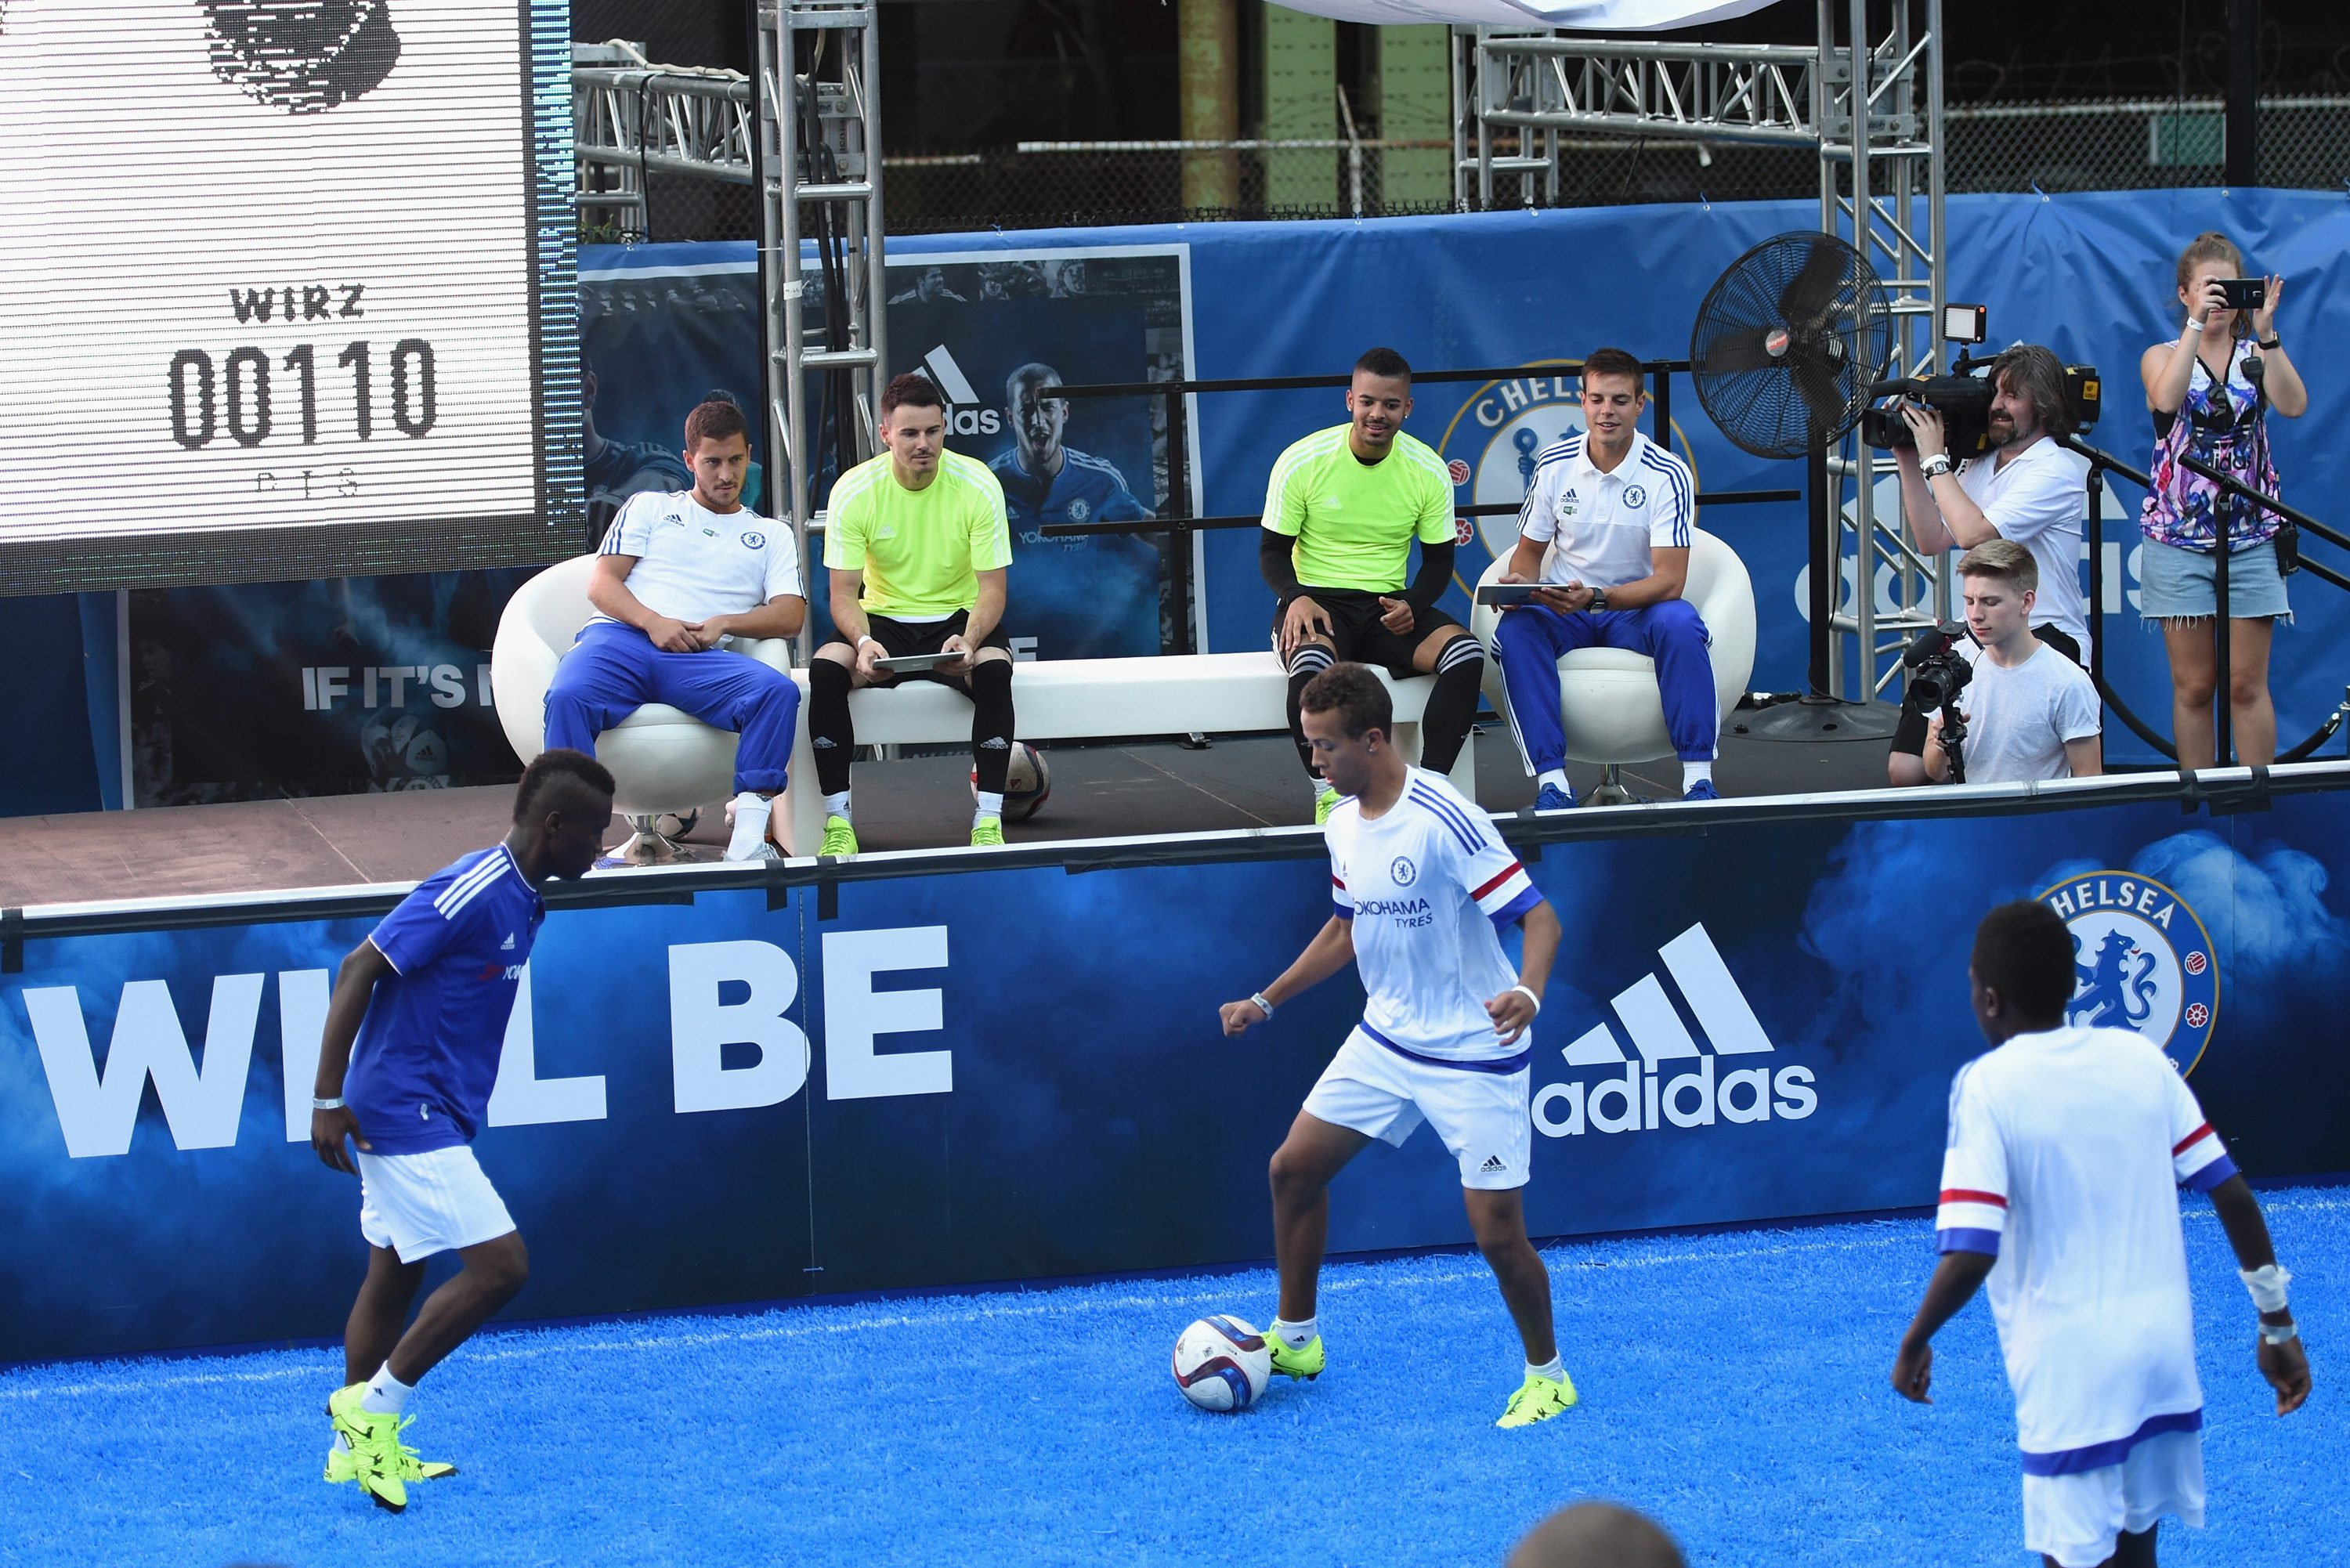 Chelsea's Eden Hazard, Cesar Azpilicueta during the Adidas Be The Difference Event on 21st July 2015 at the FC Harlem Training Ground in Harlem, New York, USA.